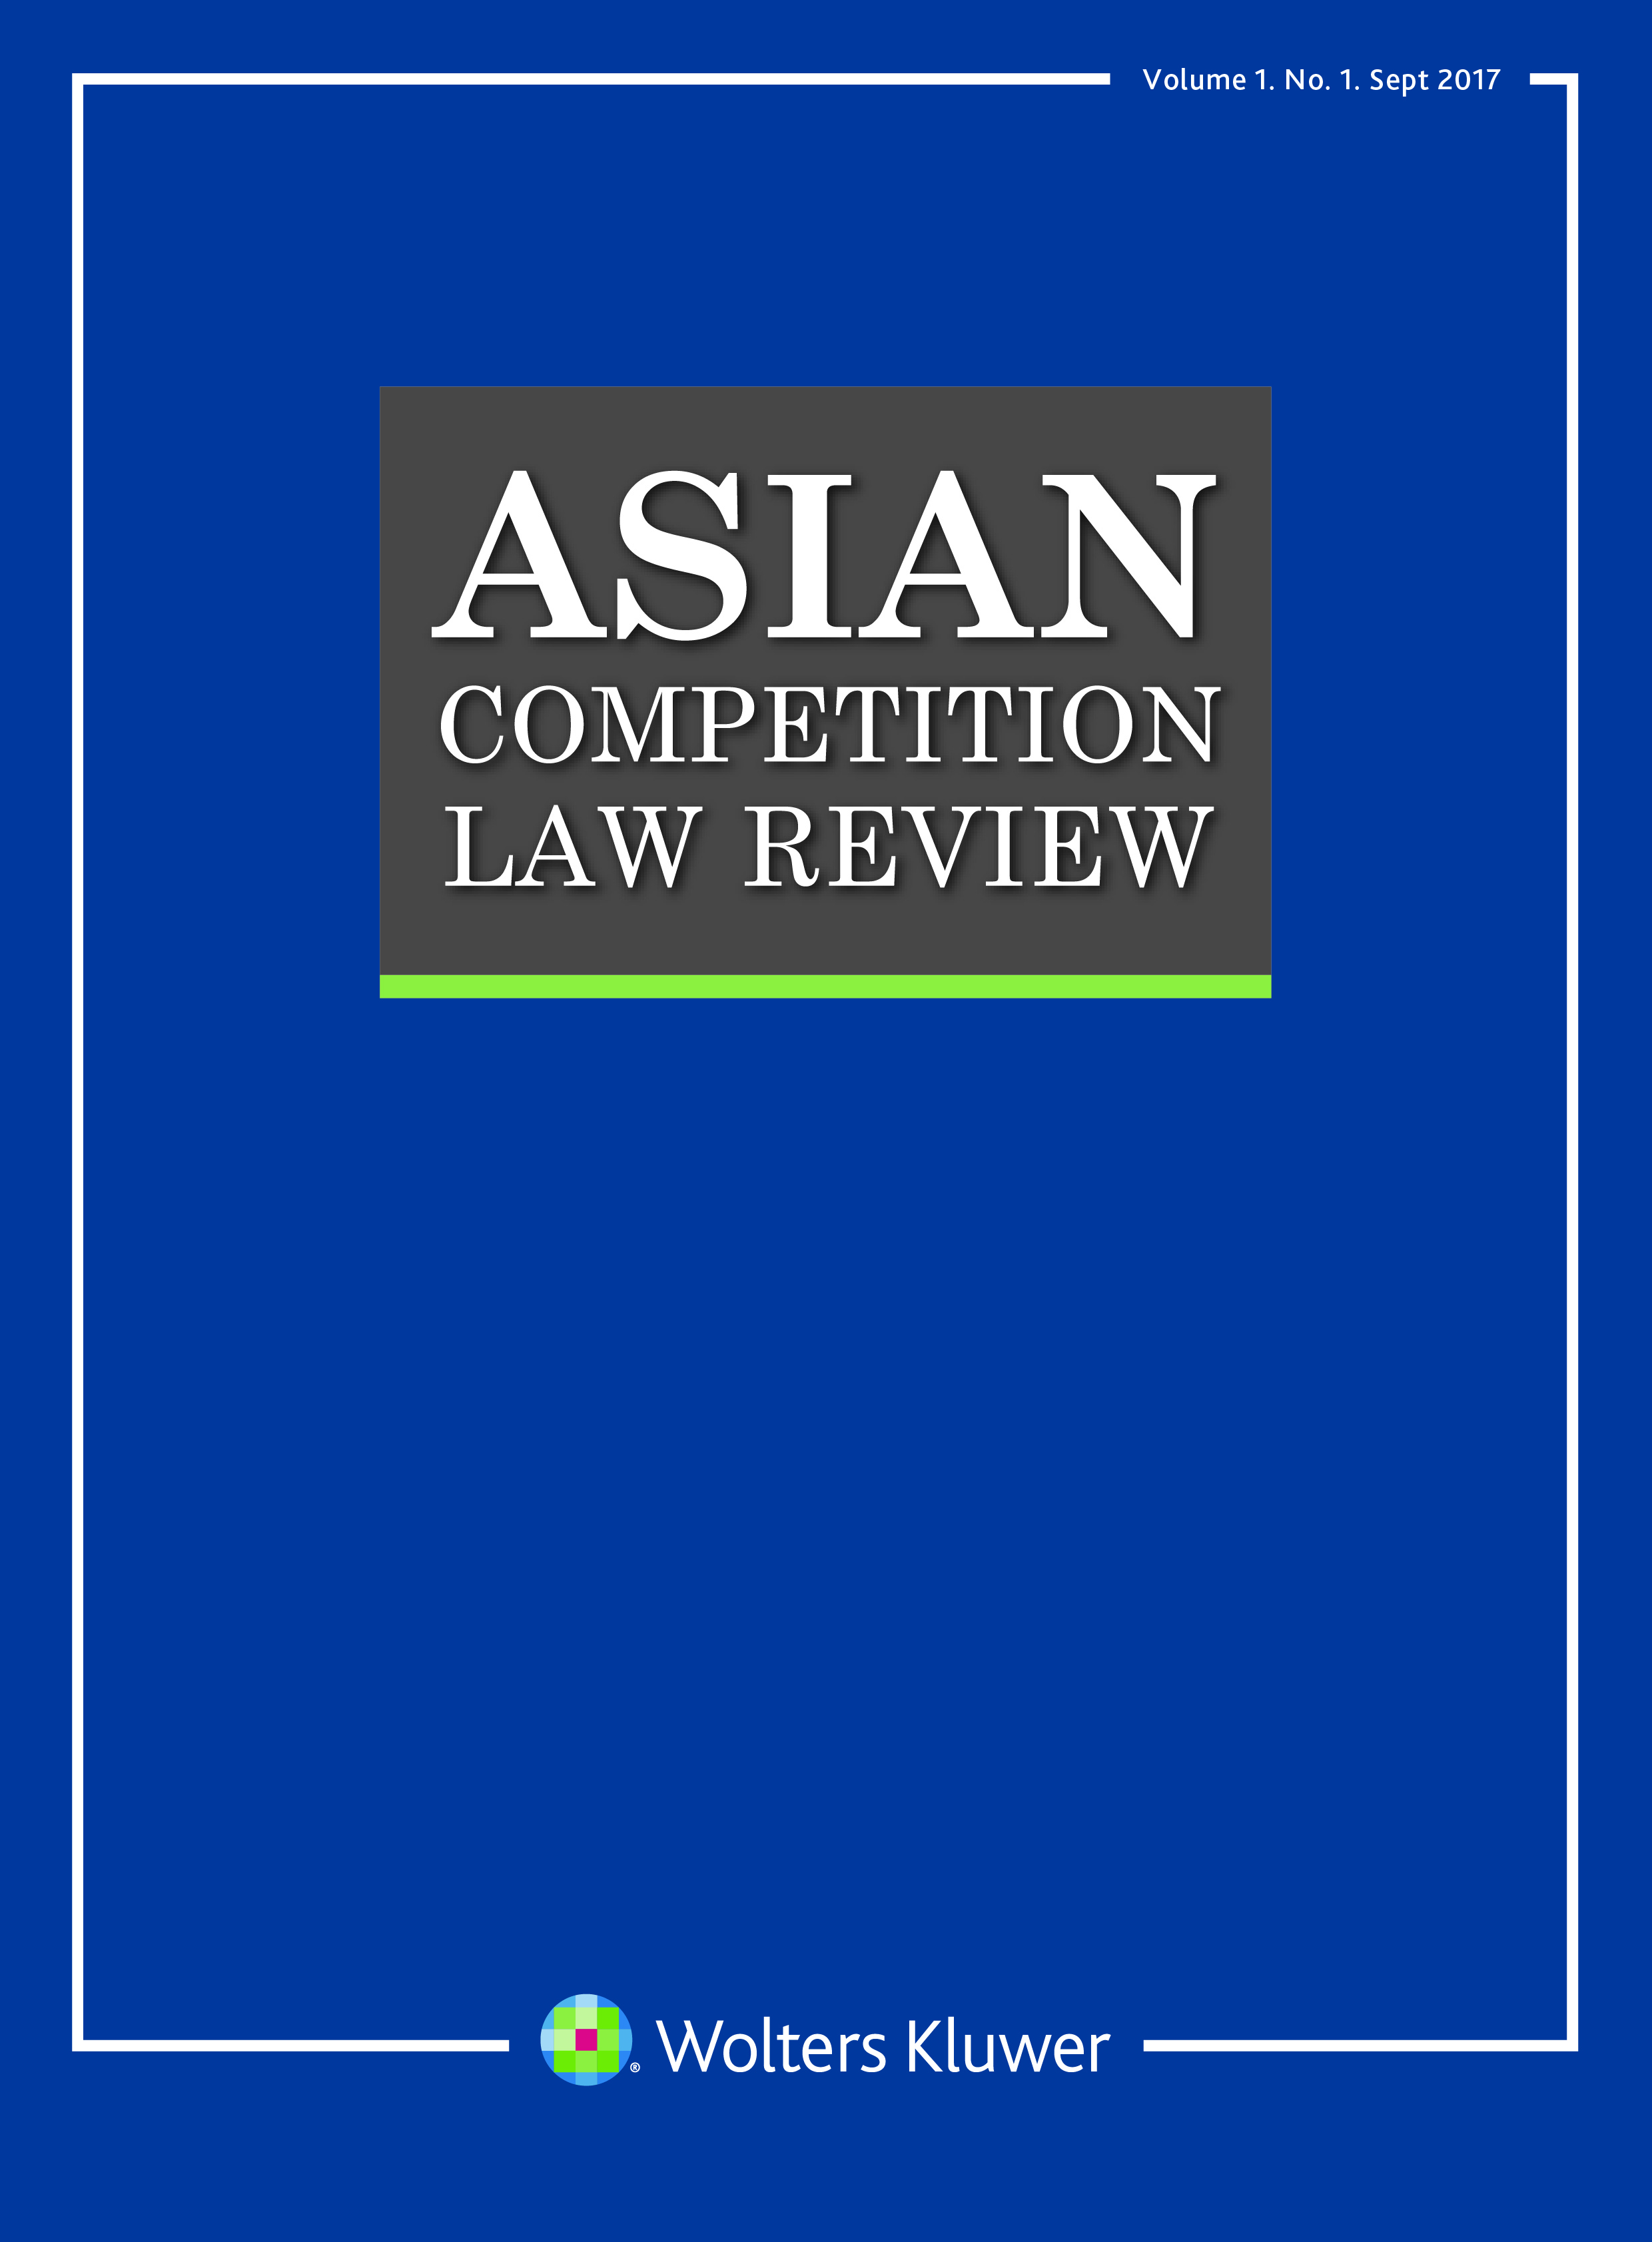 Asian Competition Law Review-01.jpg